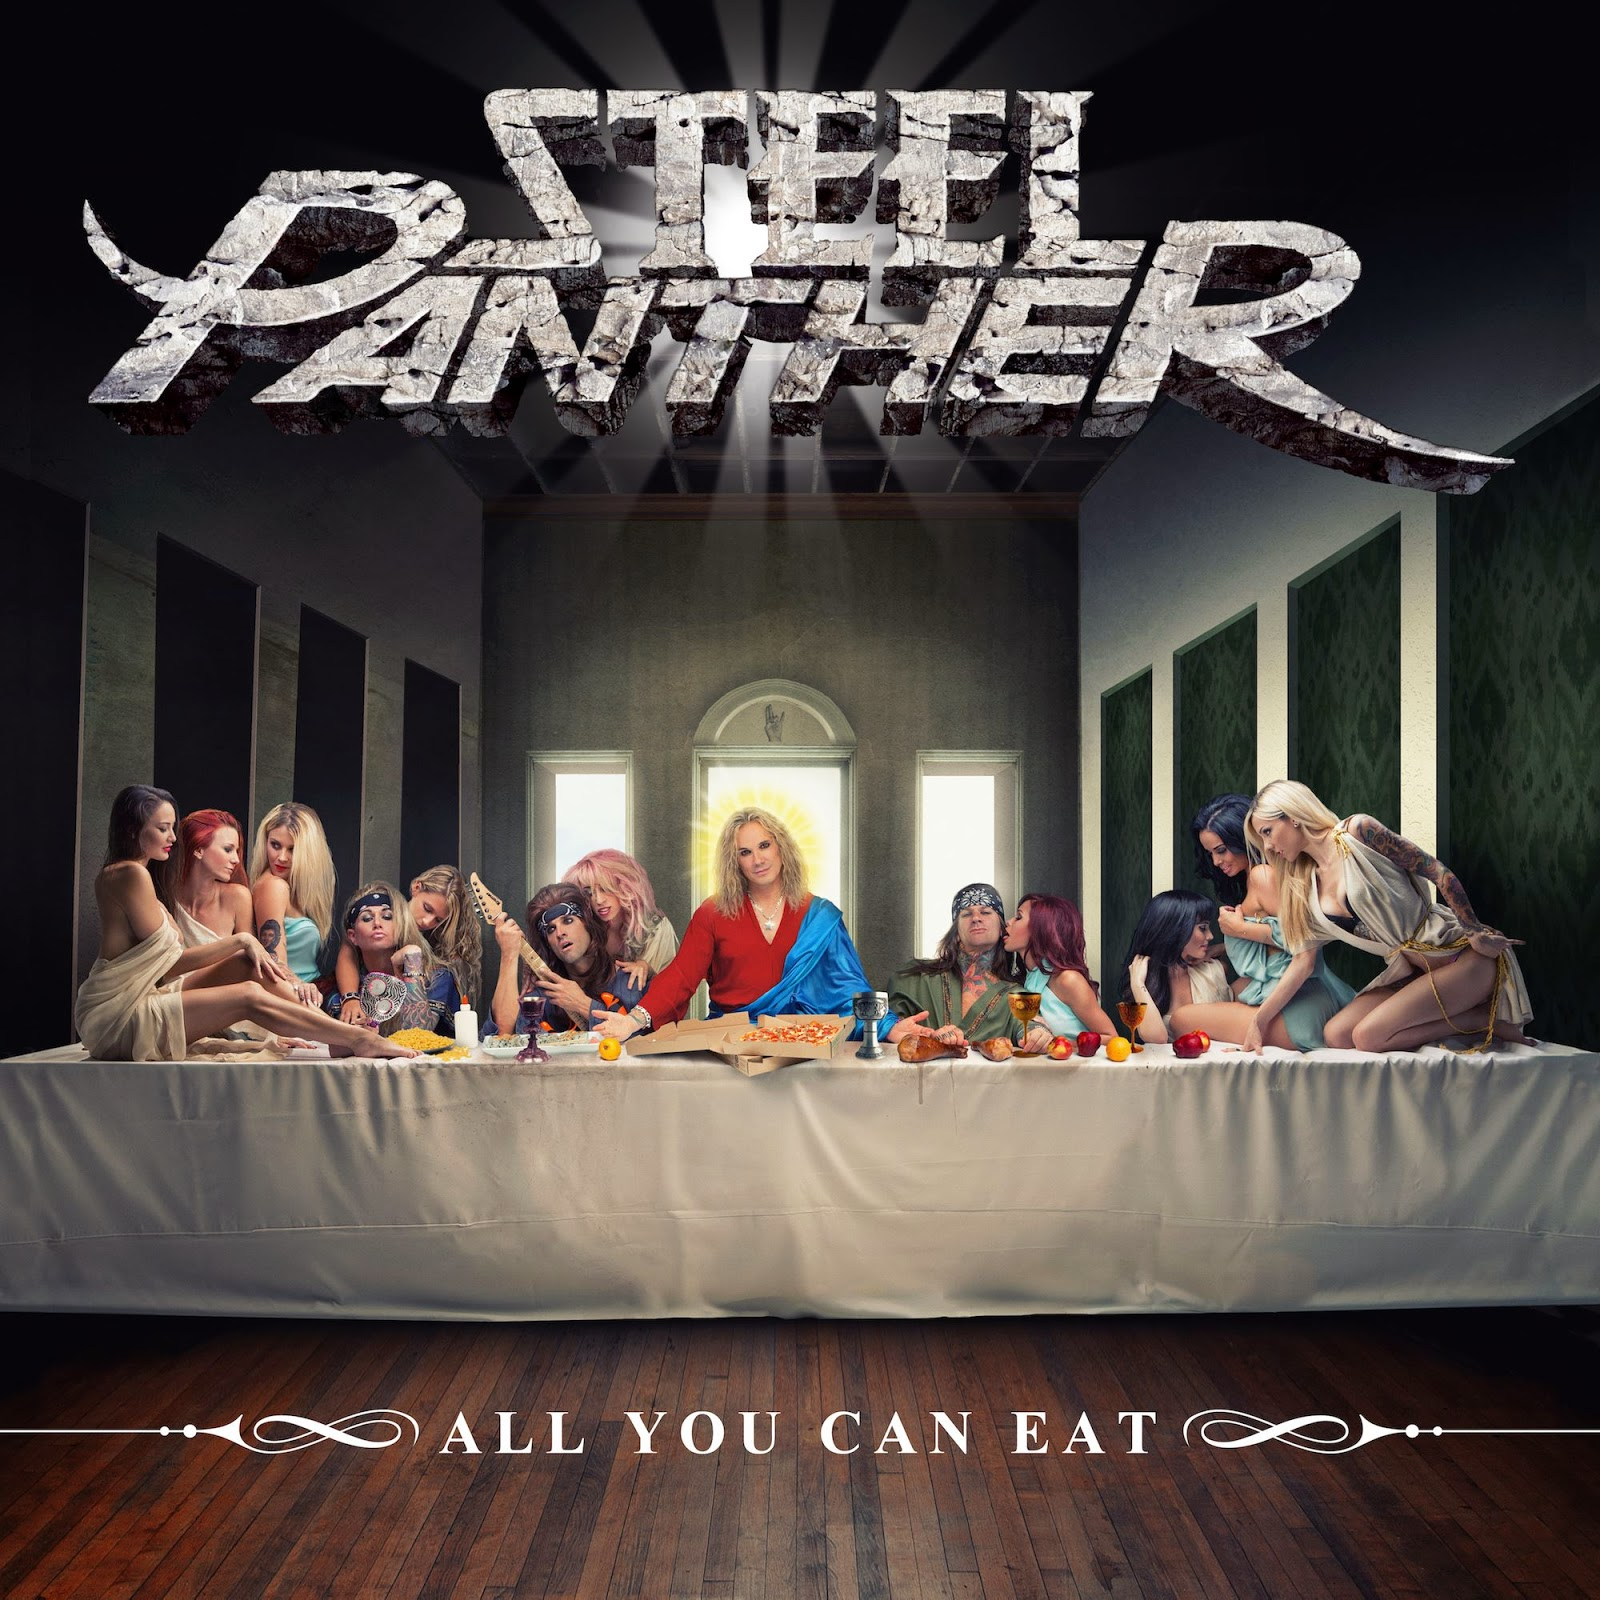 http://rock-and-metal-4-you.blogspot.de/2014/03/cd-review-steel-panther-all-you-can-eat.html